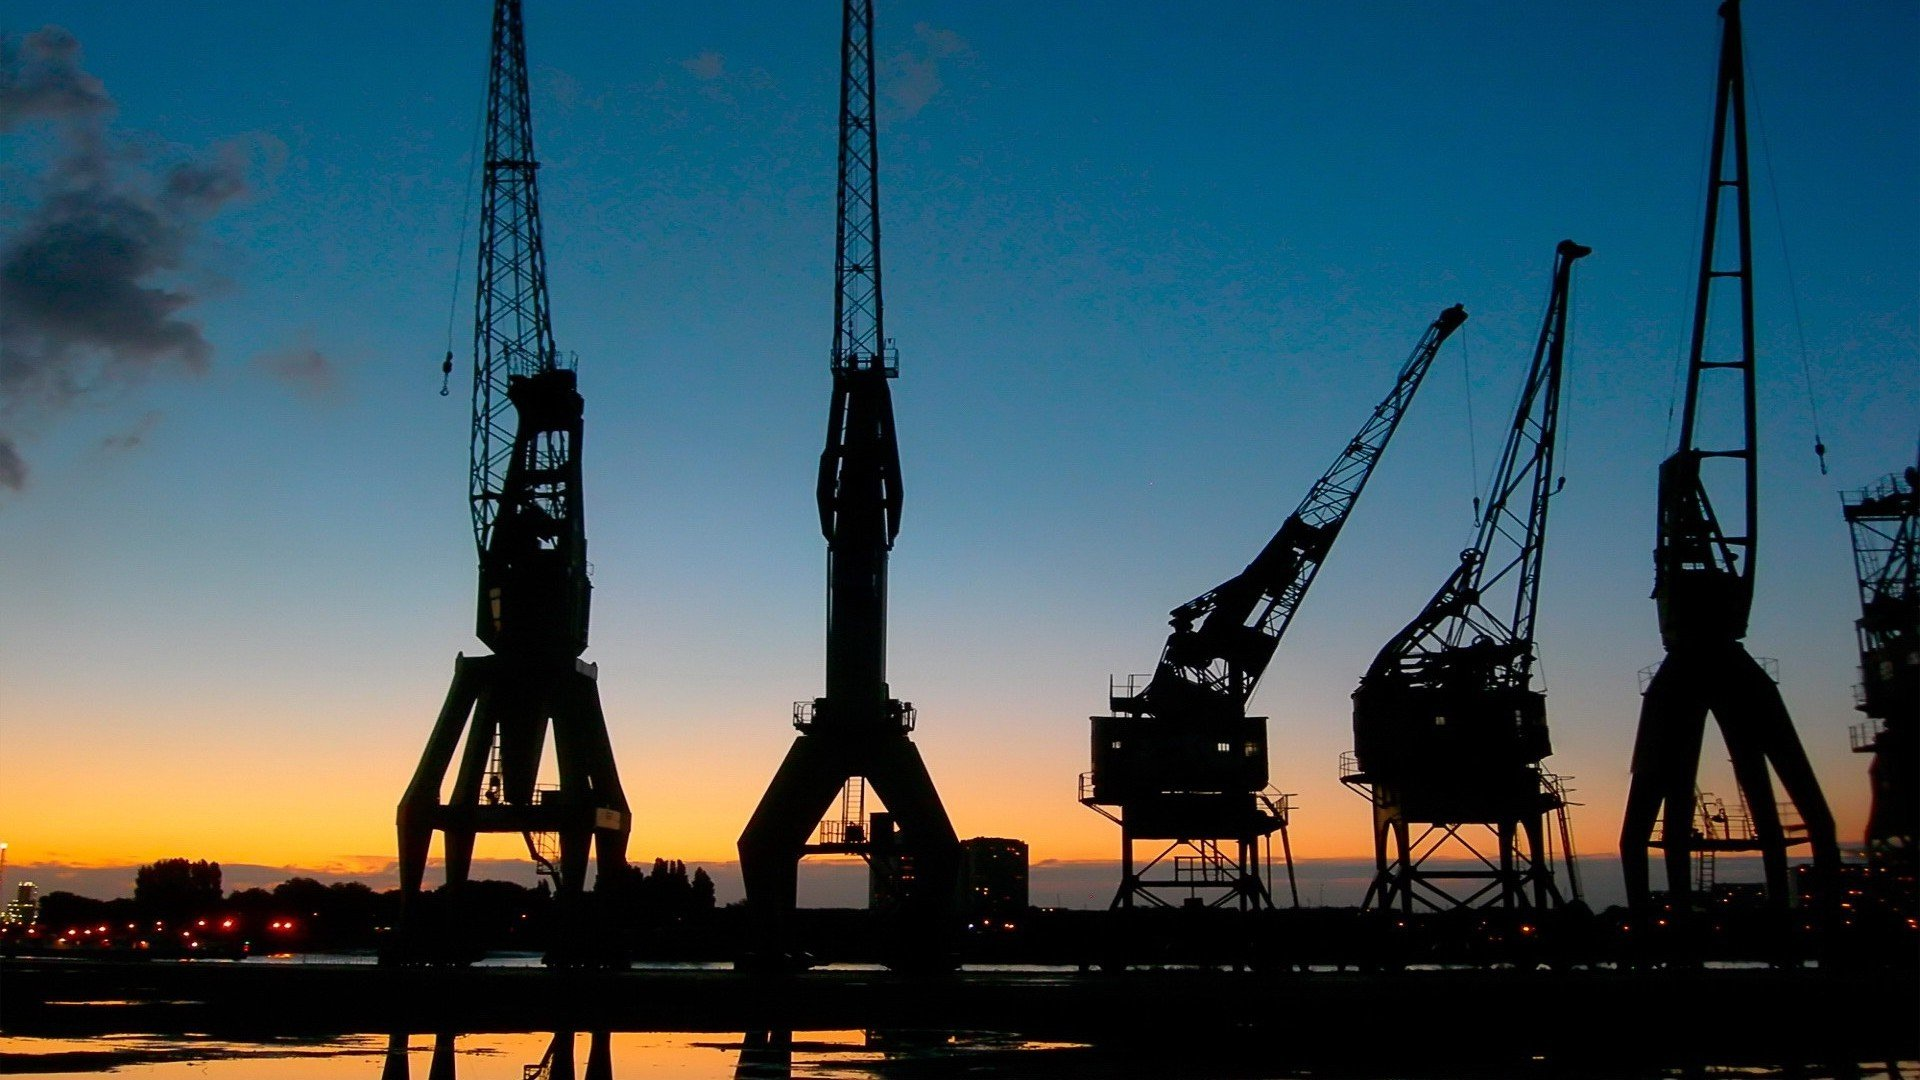 port-harbour-silhouette-crane